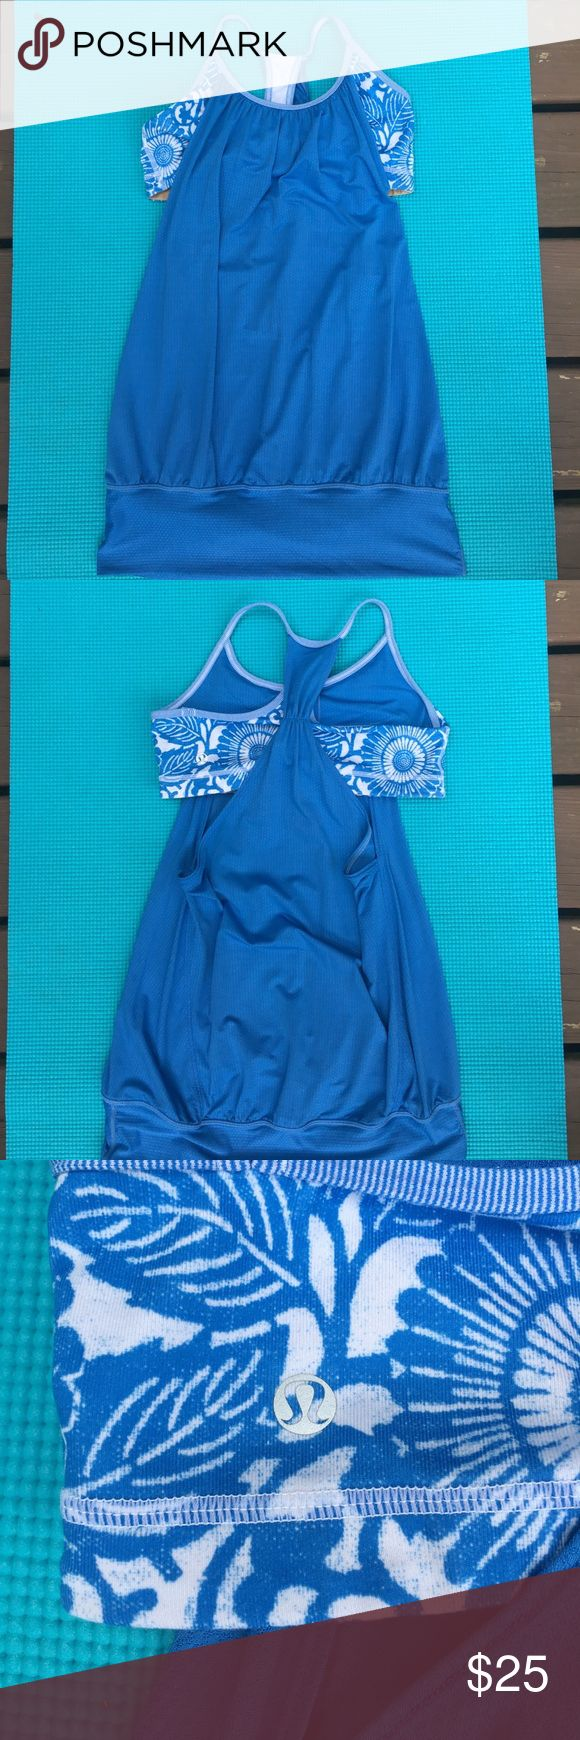 Lululemon no limits tank top in fossil blue print LOVE this top but I have too many clothes right now so it has to move! Built in sports bra is breezy and awesome for summer outdoor workouts or hot yoga lululemon athletica Tops Tank Tops